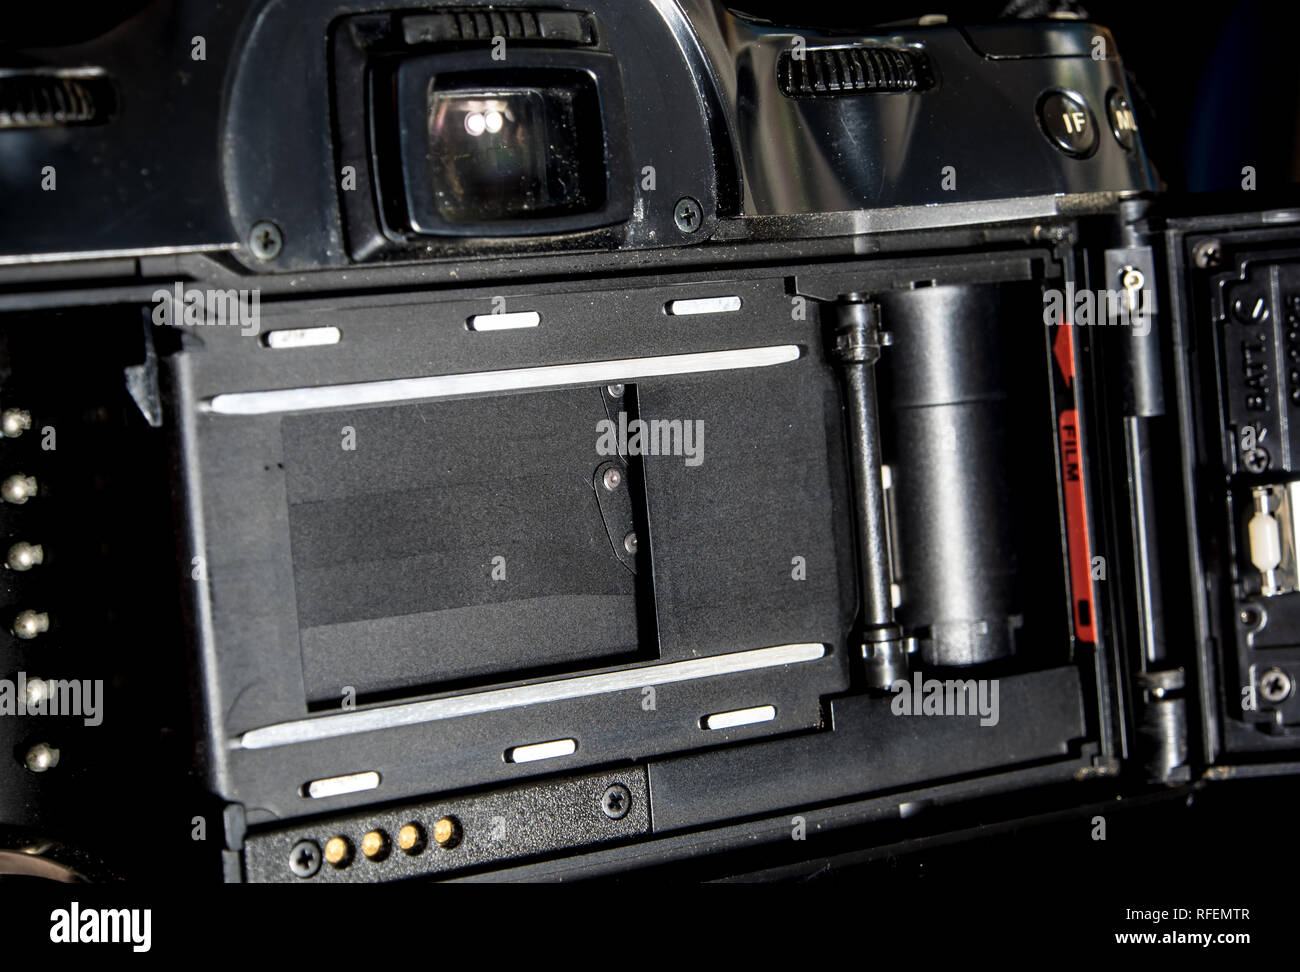 Back view of film system SLR camera body opened back lid to film position, Inside view of the shutter - Stock Image